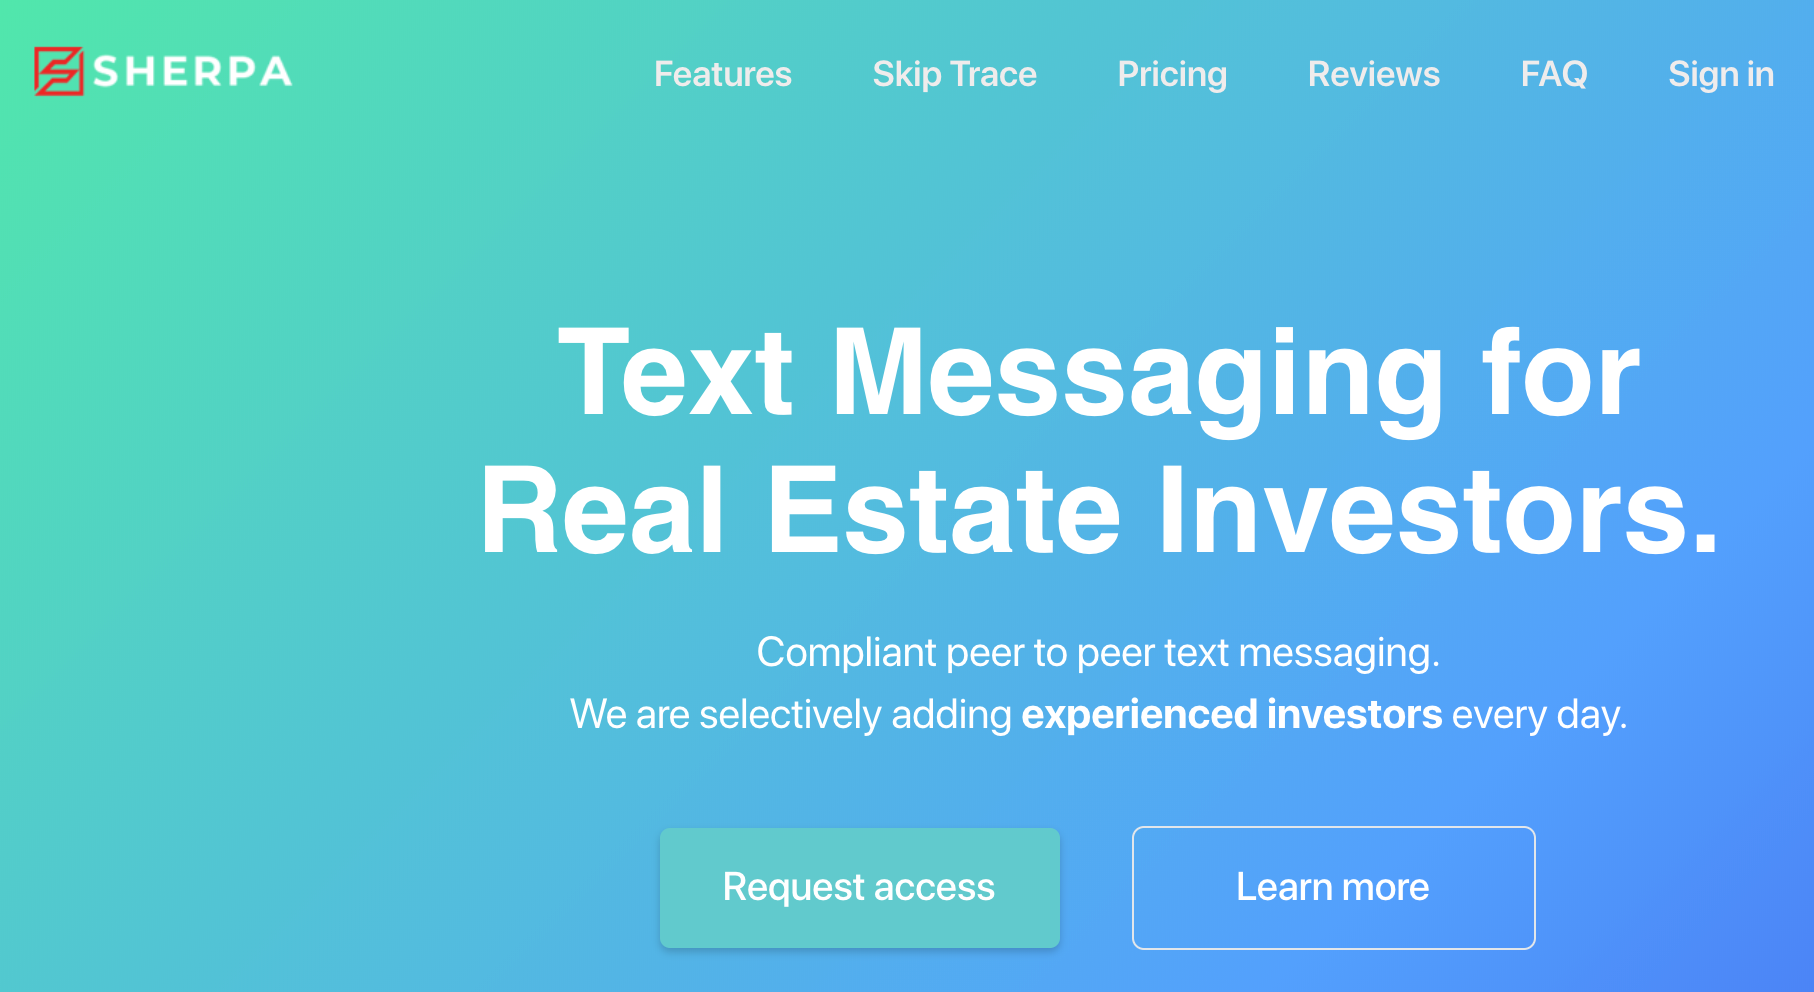 Compliant_Text_Messaging_for_Real_Estate_-_Sherpa.png